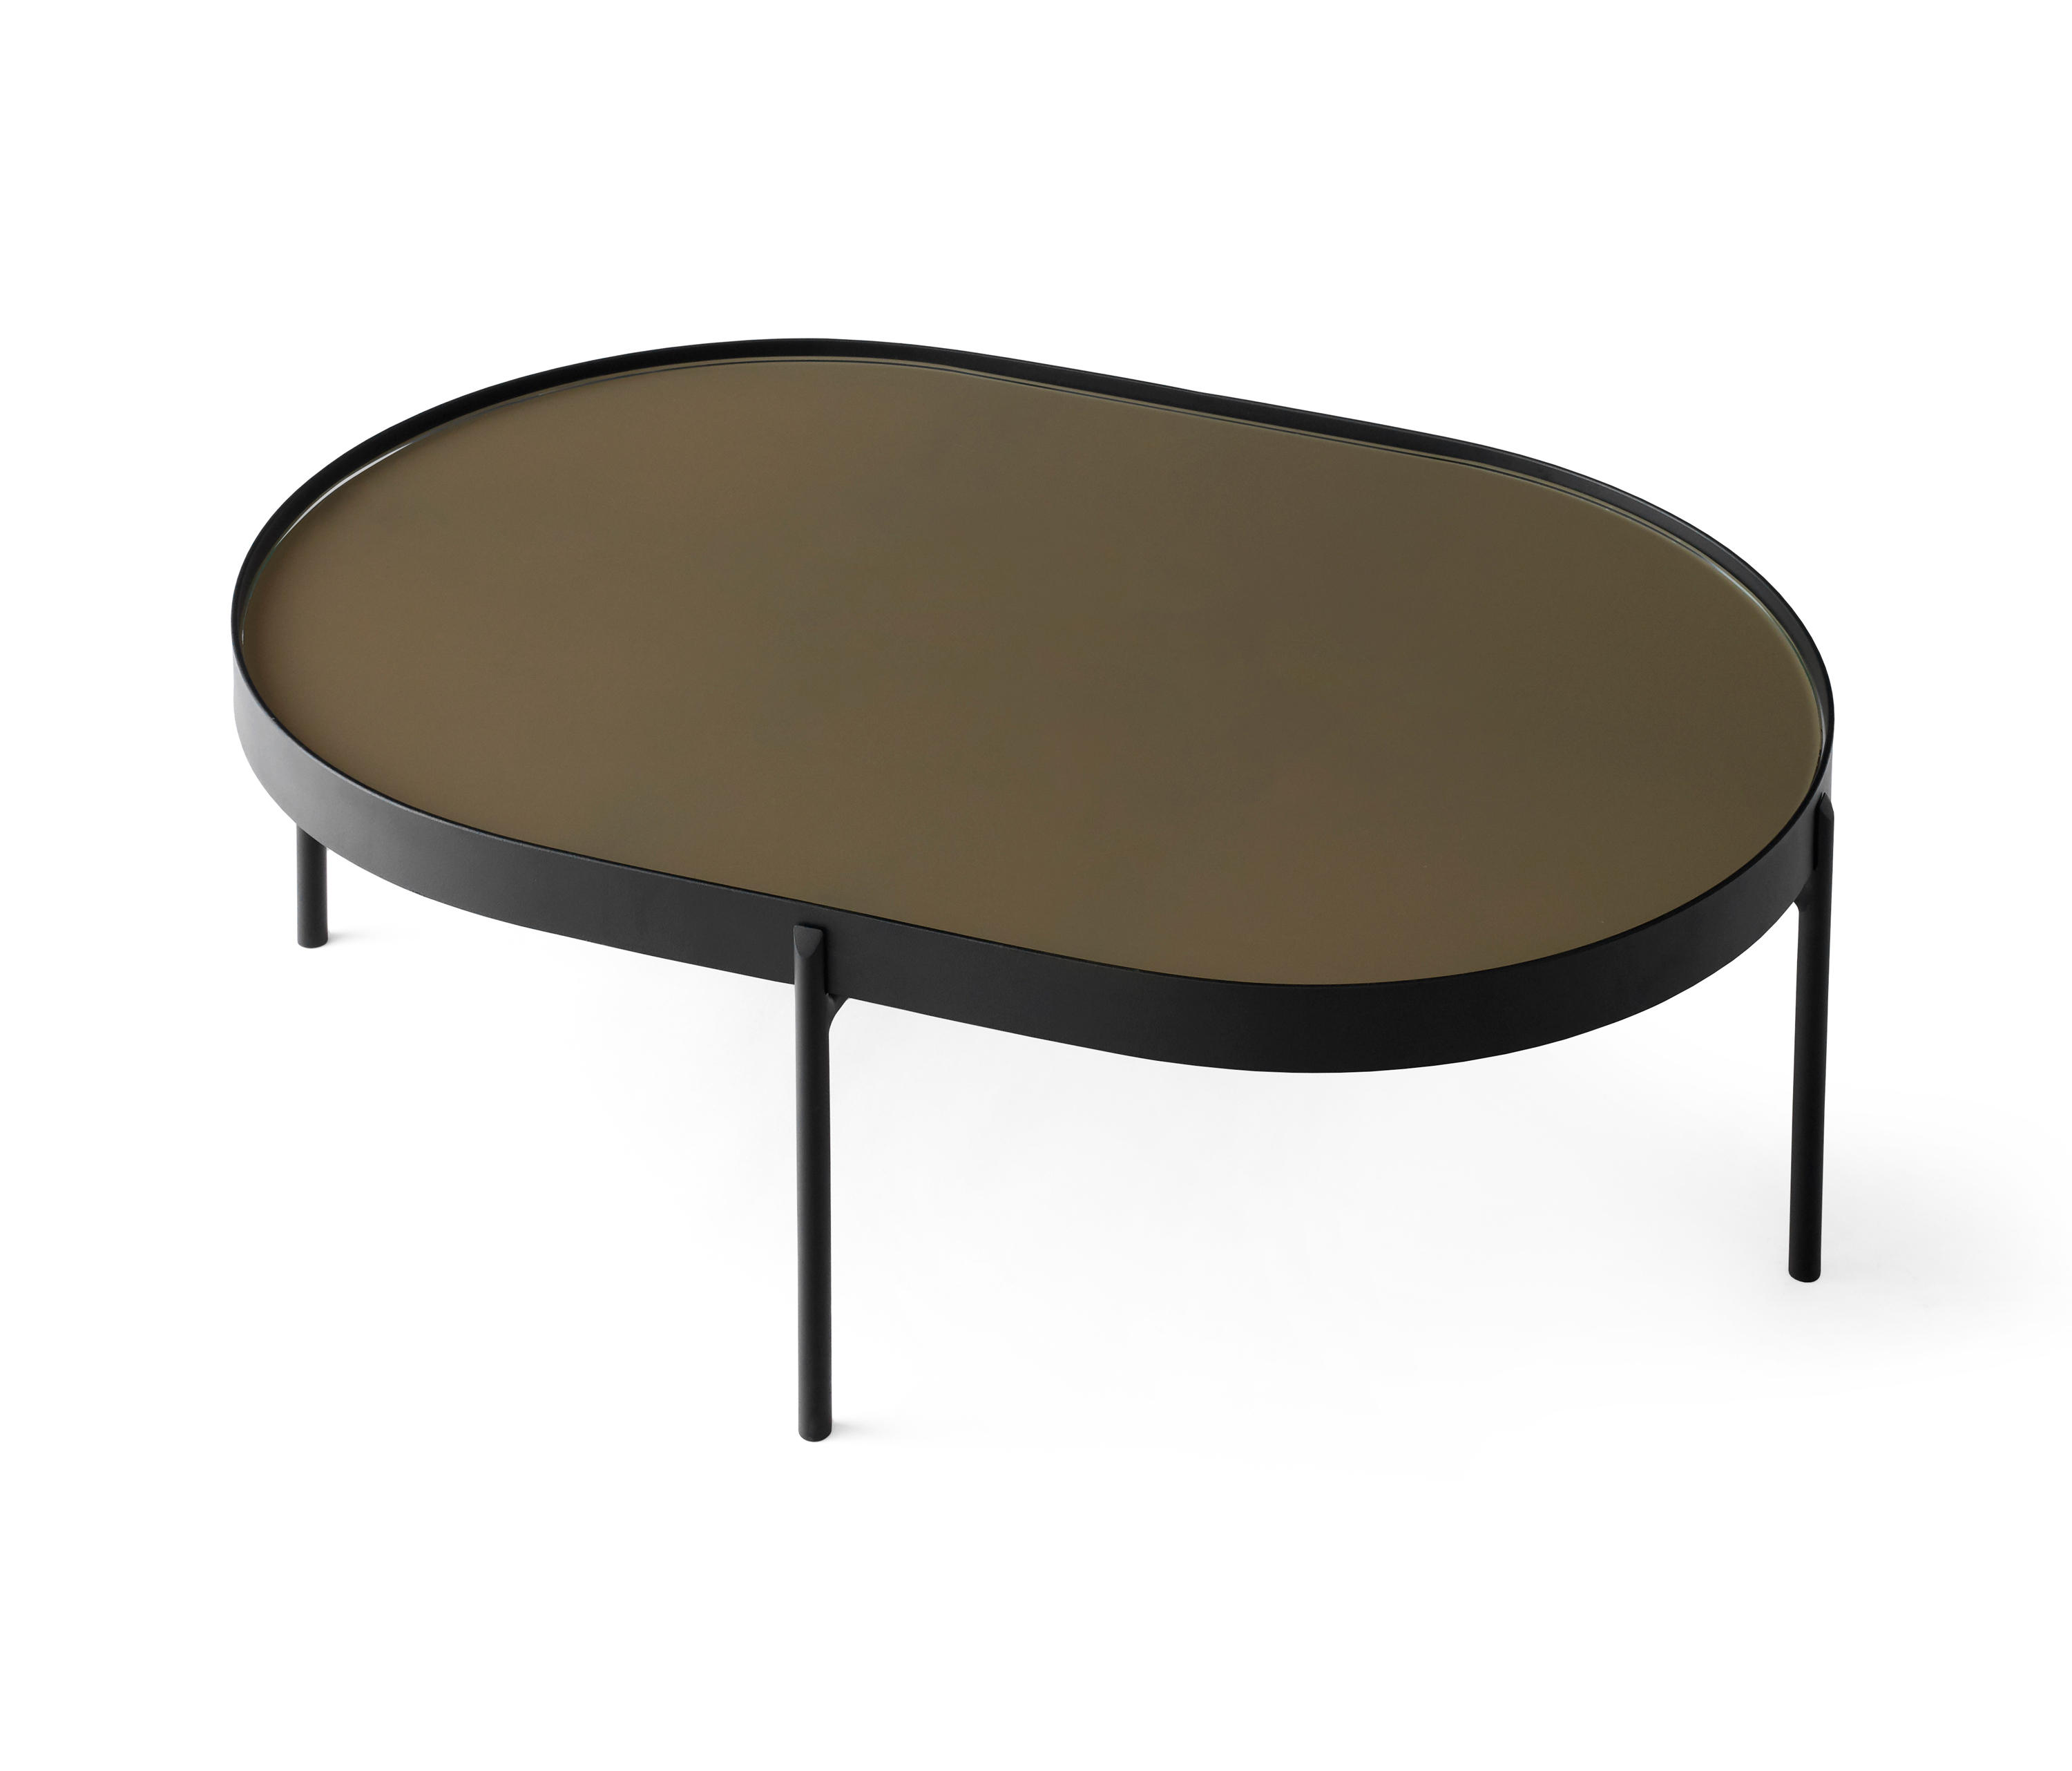 NoNo Table | Large By MENU | Coffee Tables ...